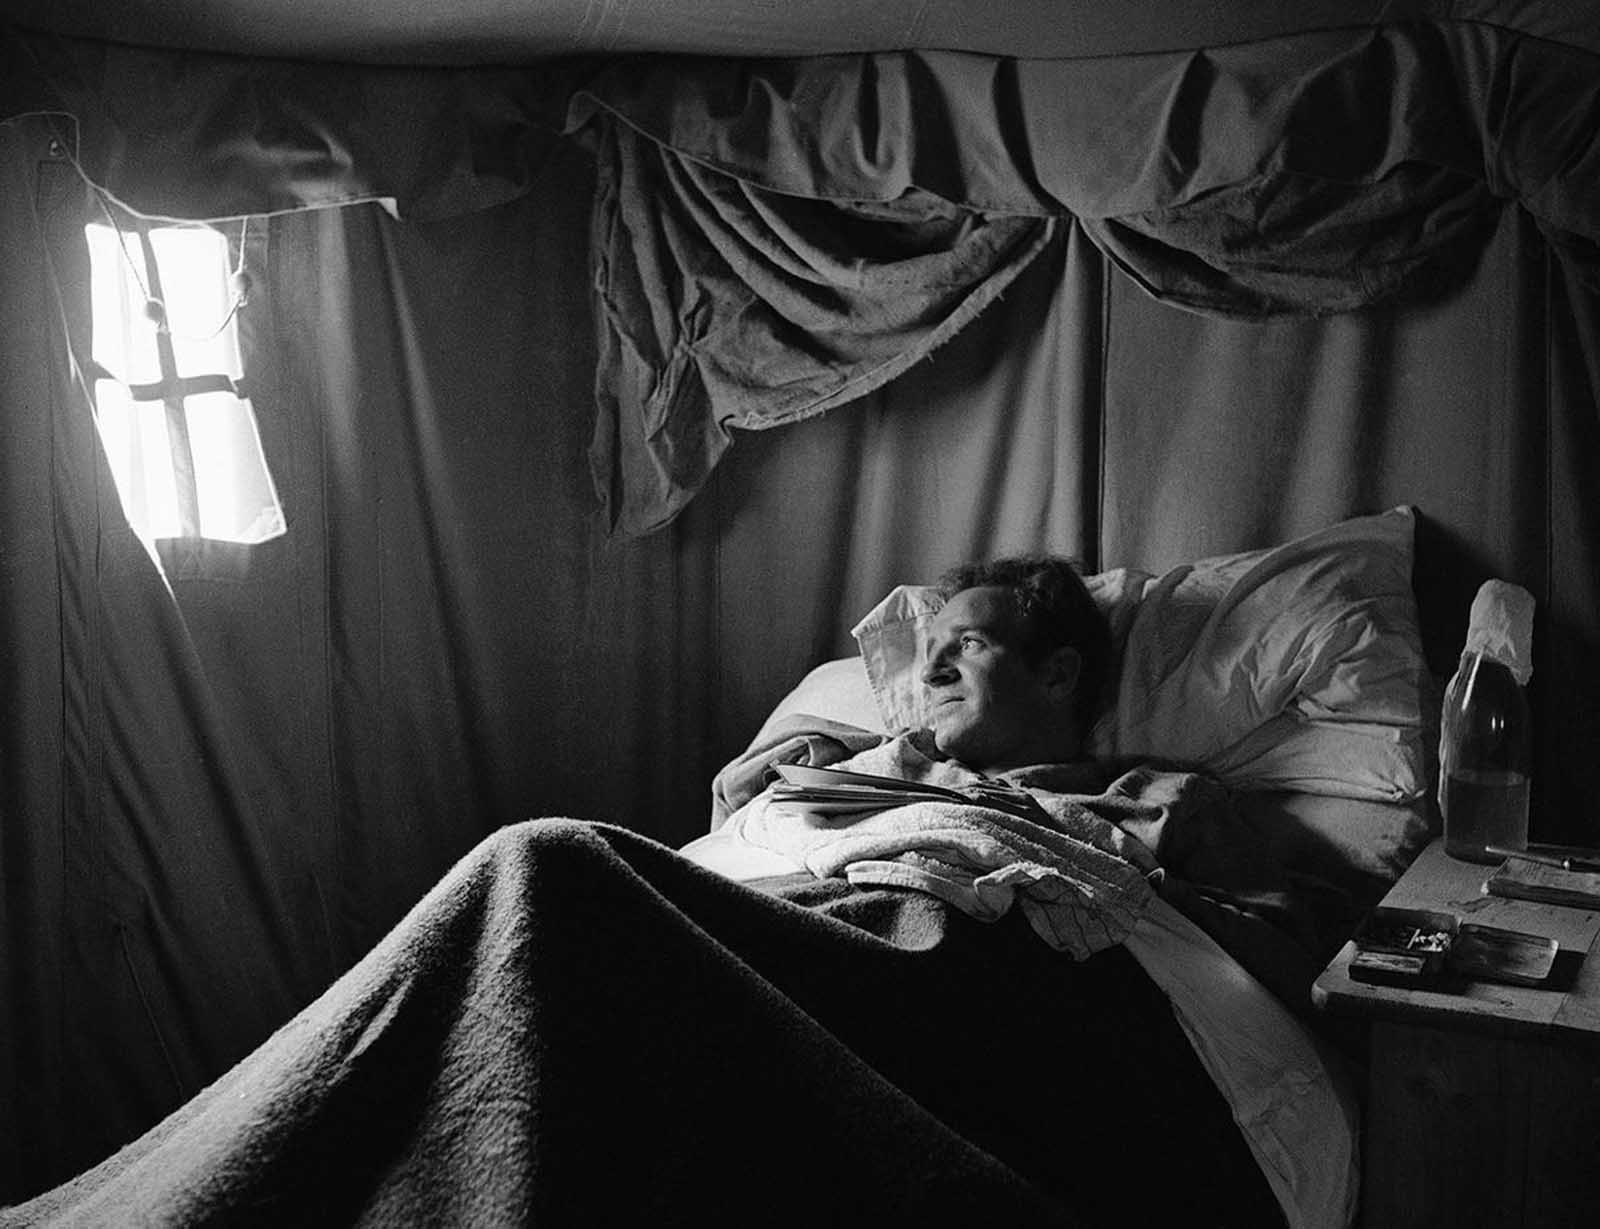 A wounded British warrior in Libya lies on cot in a desert hospital tent, on June 18, 1942, shielded from the strong tropical sun.